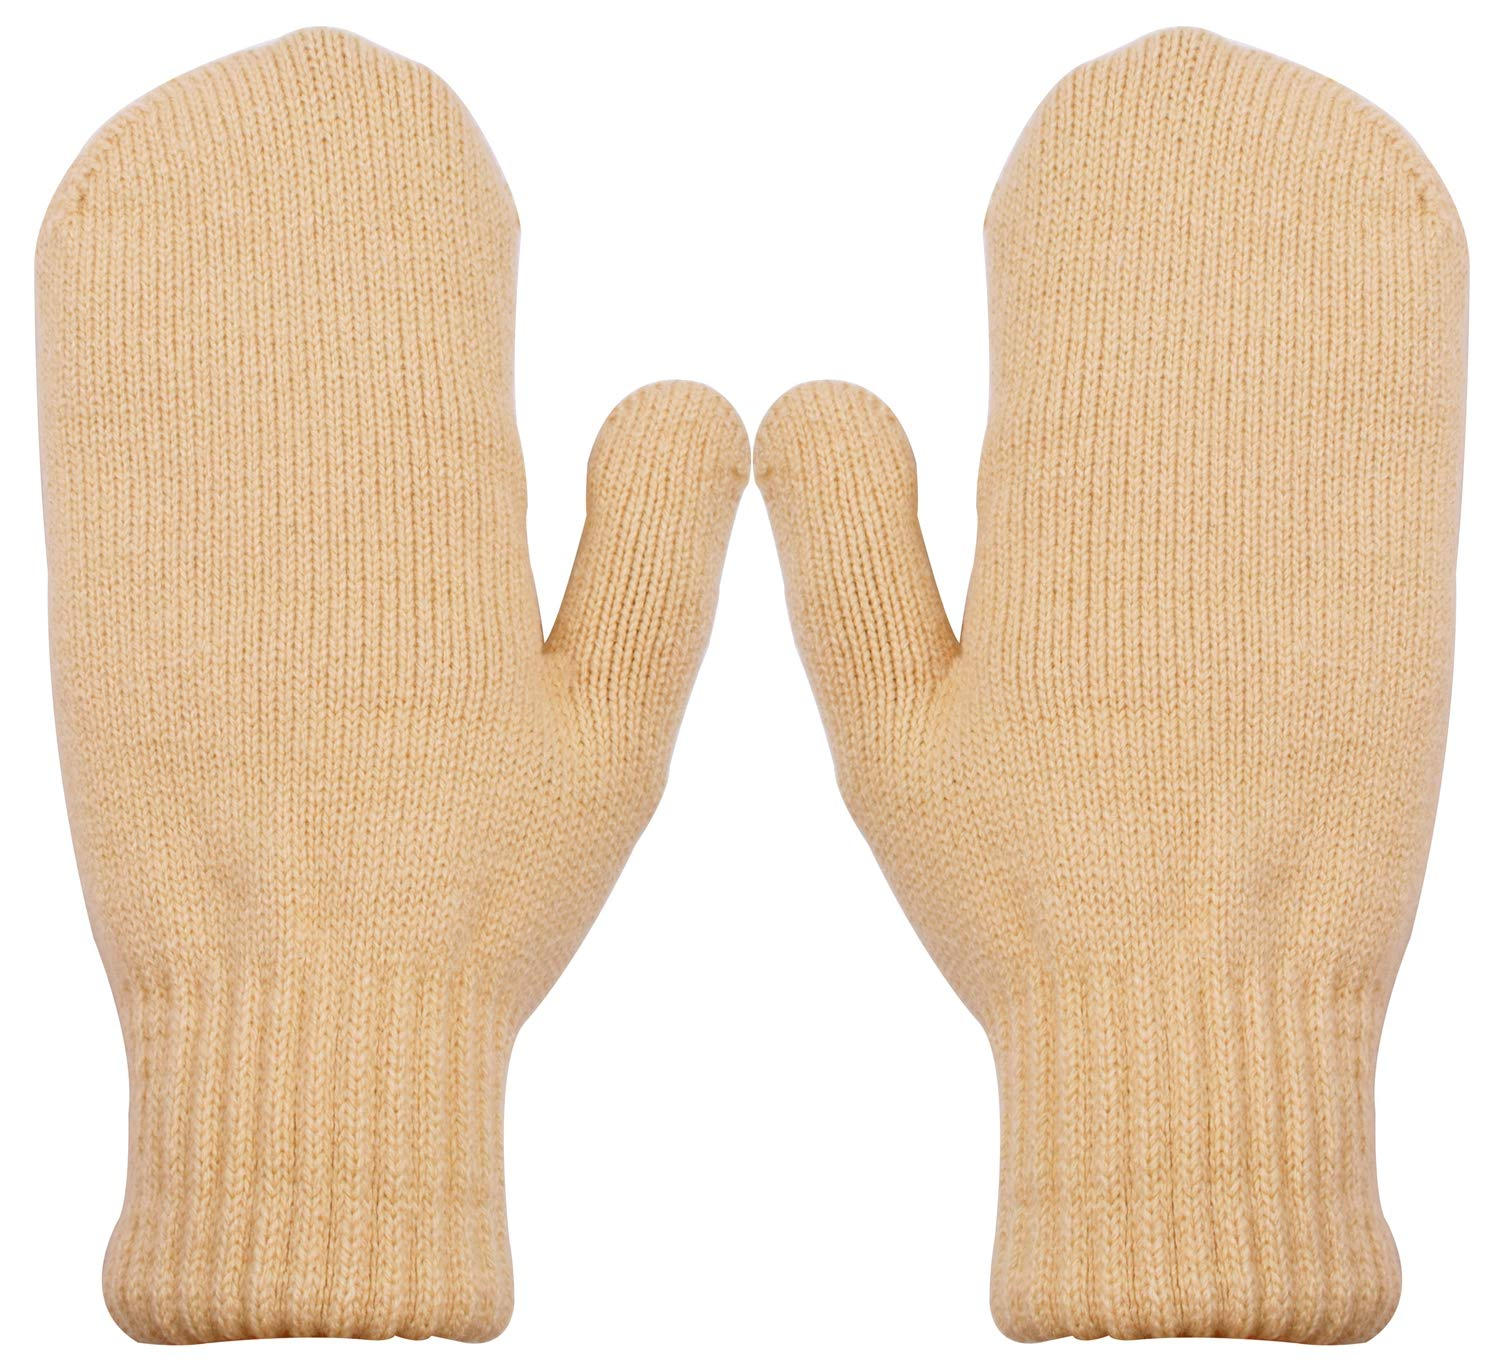 PZLE Women's Knitted Mittens Cashmere Winter Warm Thick Khaki by PZLE